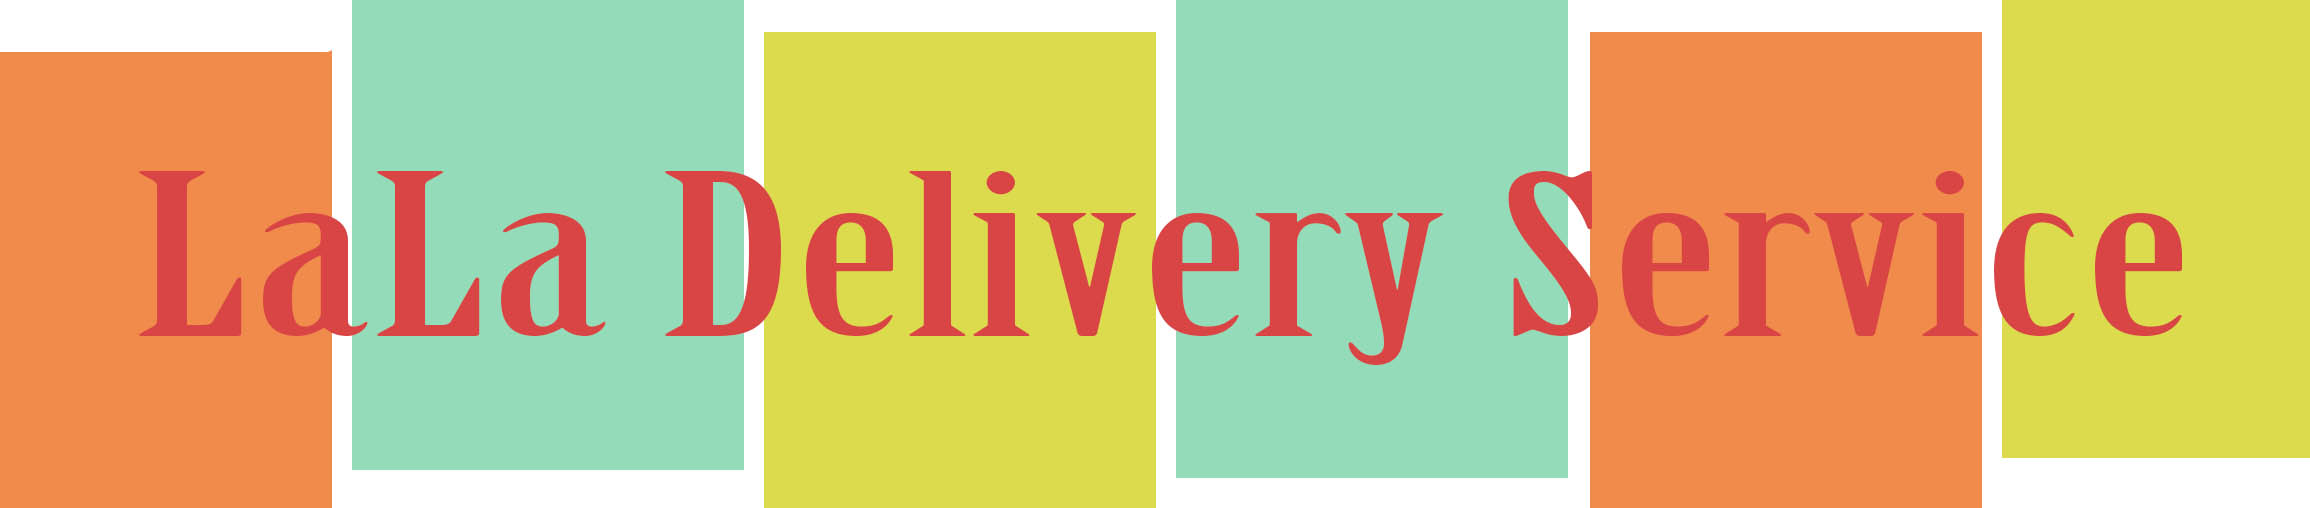 lalagifts_delivery_service_cn